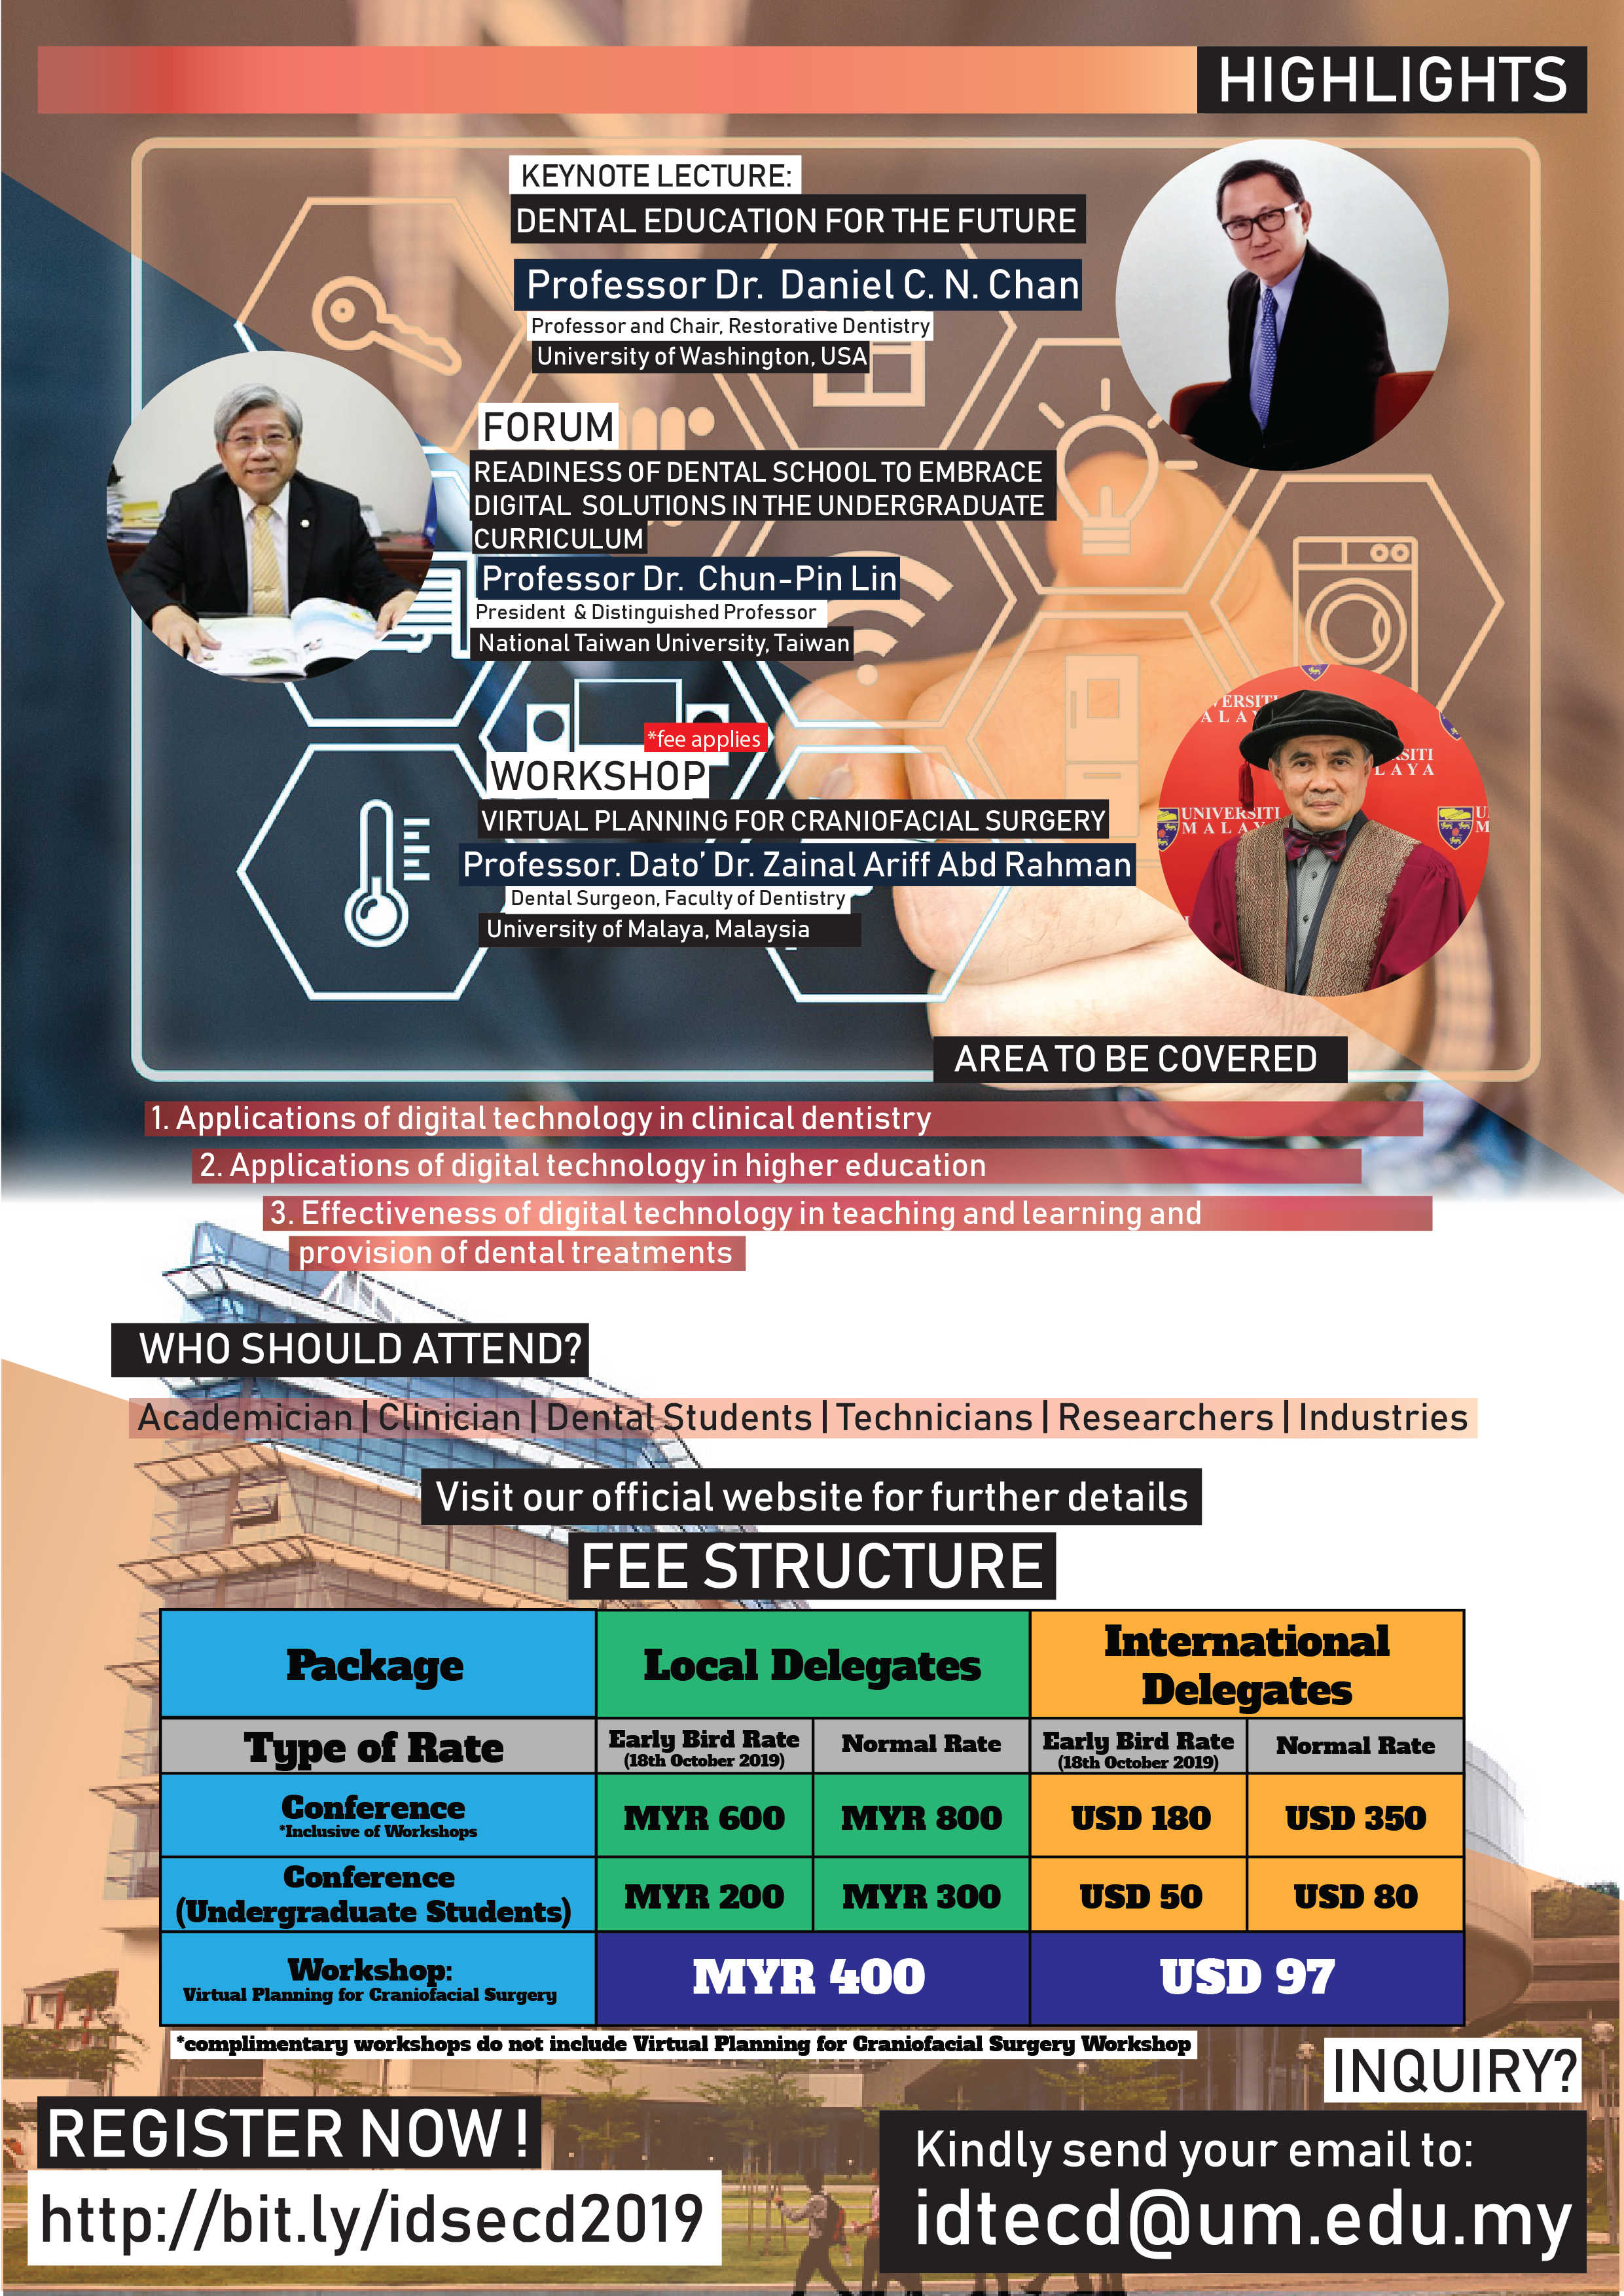 fee structure-02